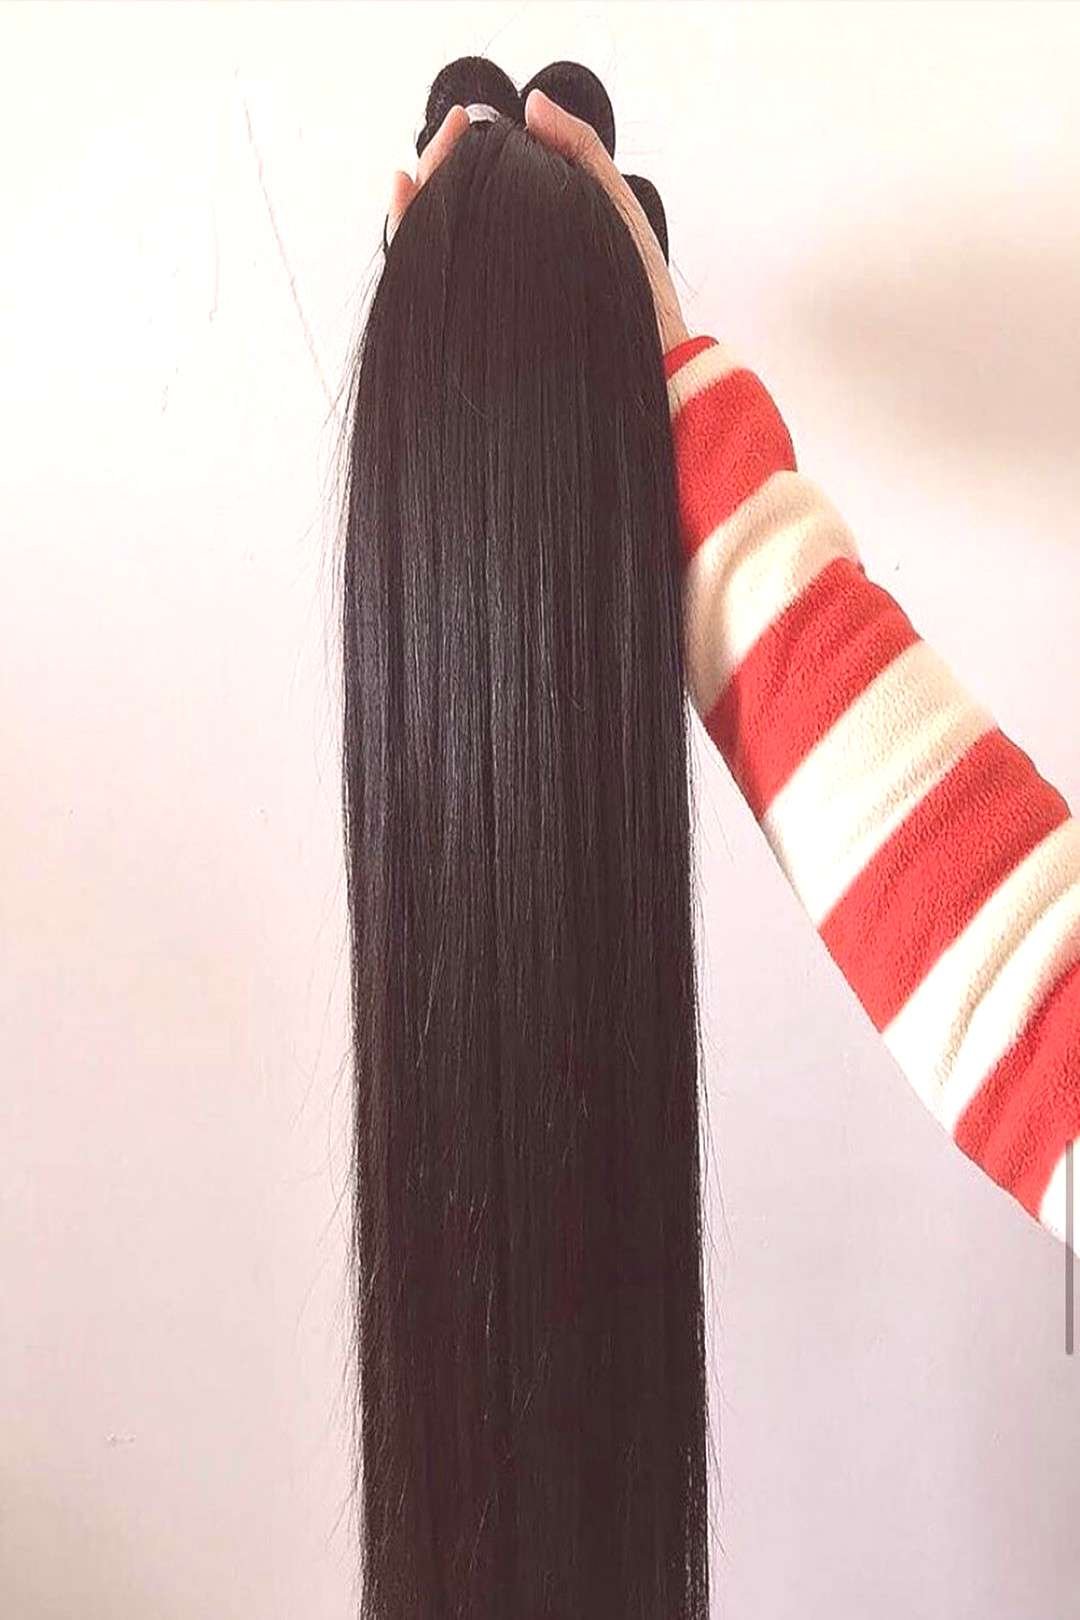 Wholesale bundles wigs on April 20 2020 one or more people and st